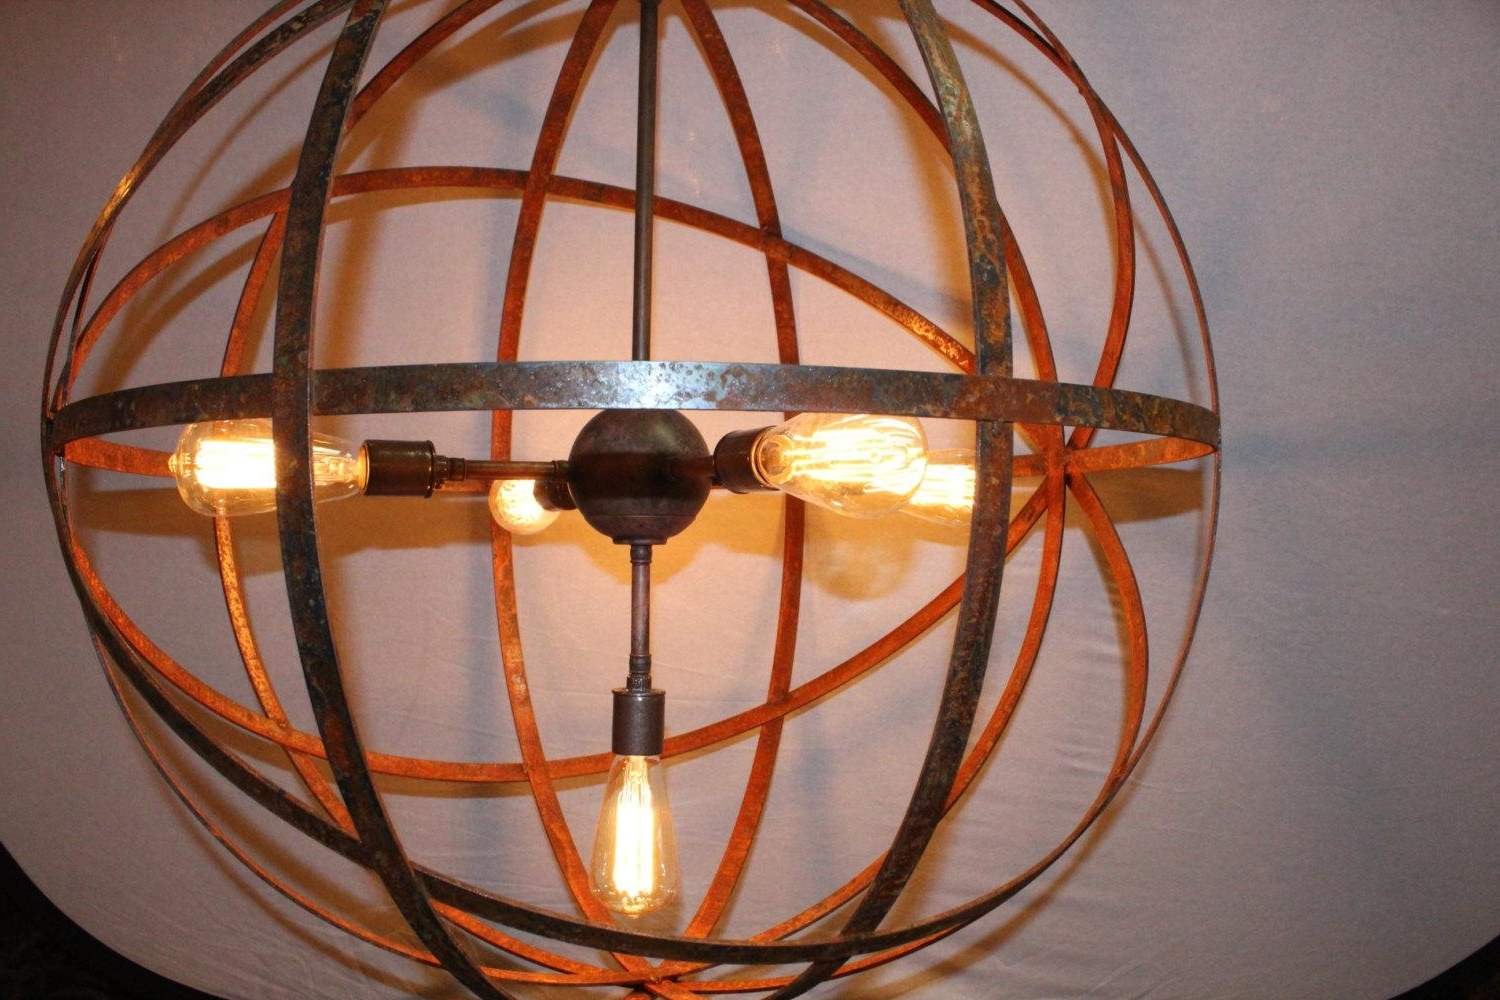 Metal Sphere Chandelier For Preferred Metal Sphere Chandelier — Cookwithalocal Home And Space Decor : Made (View 5 of 15)